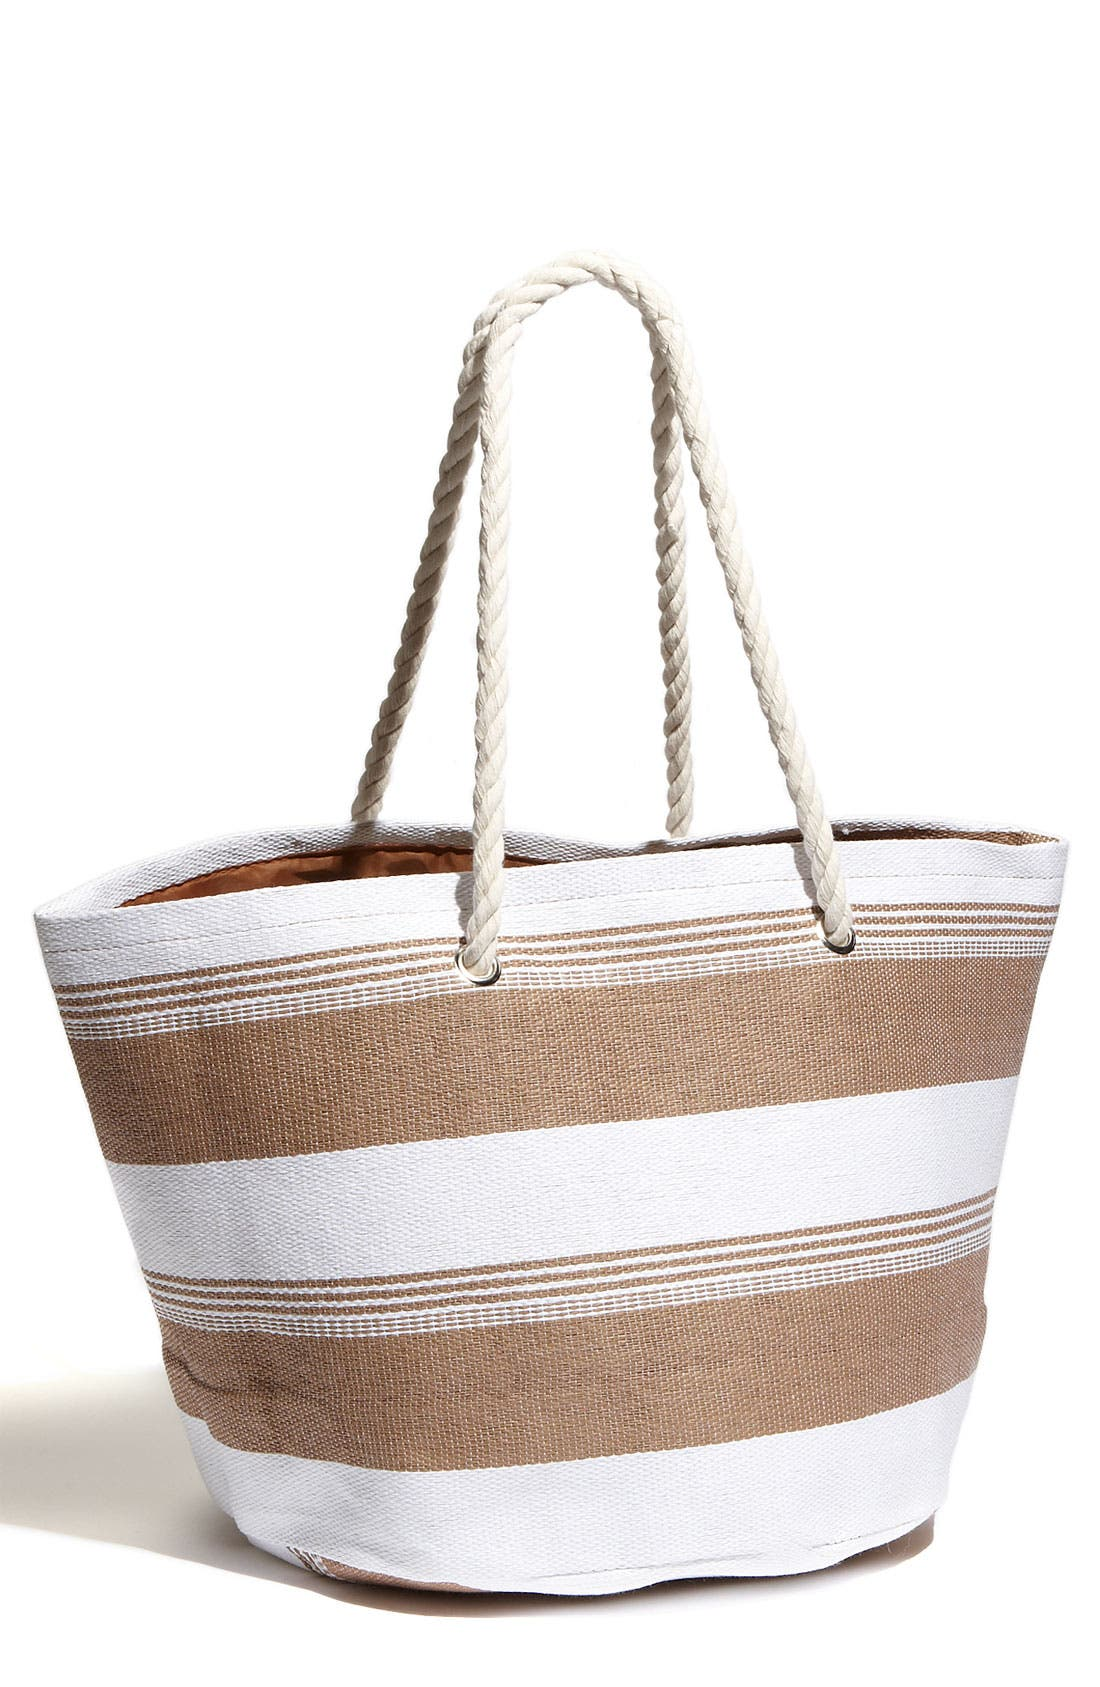 CESCA, Rope Handle Woven Stripe Tote, Main thumbnail 1, color, 242